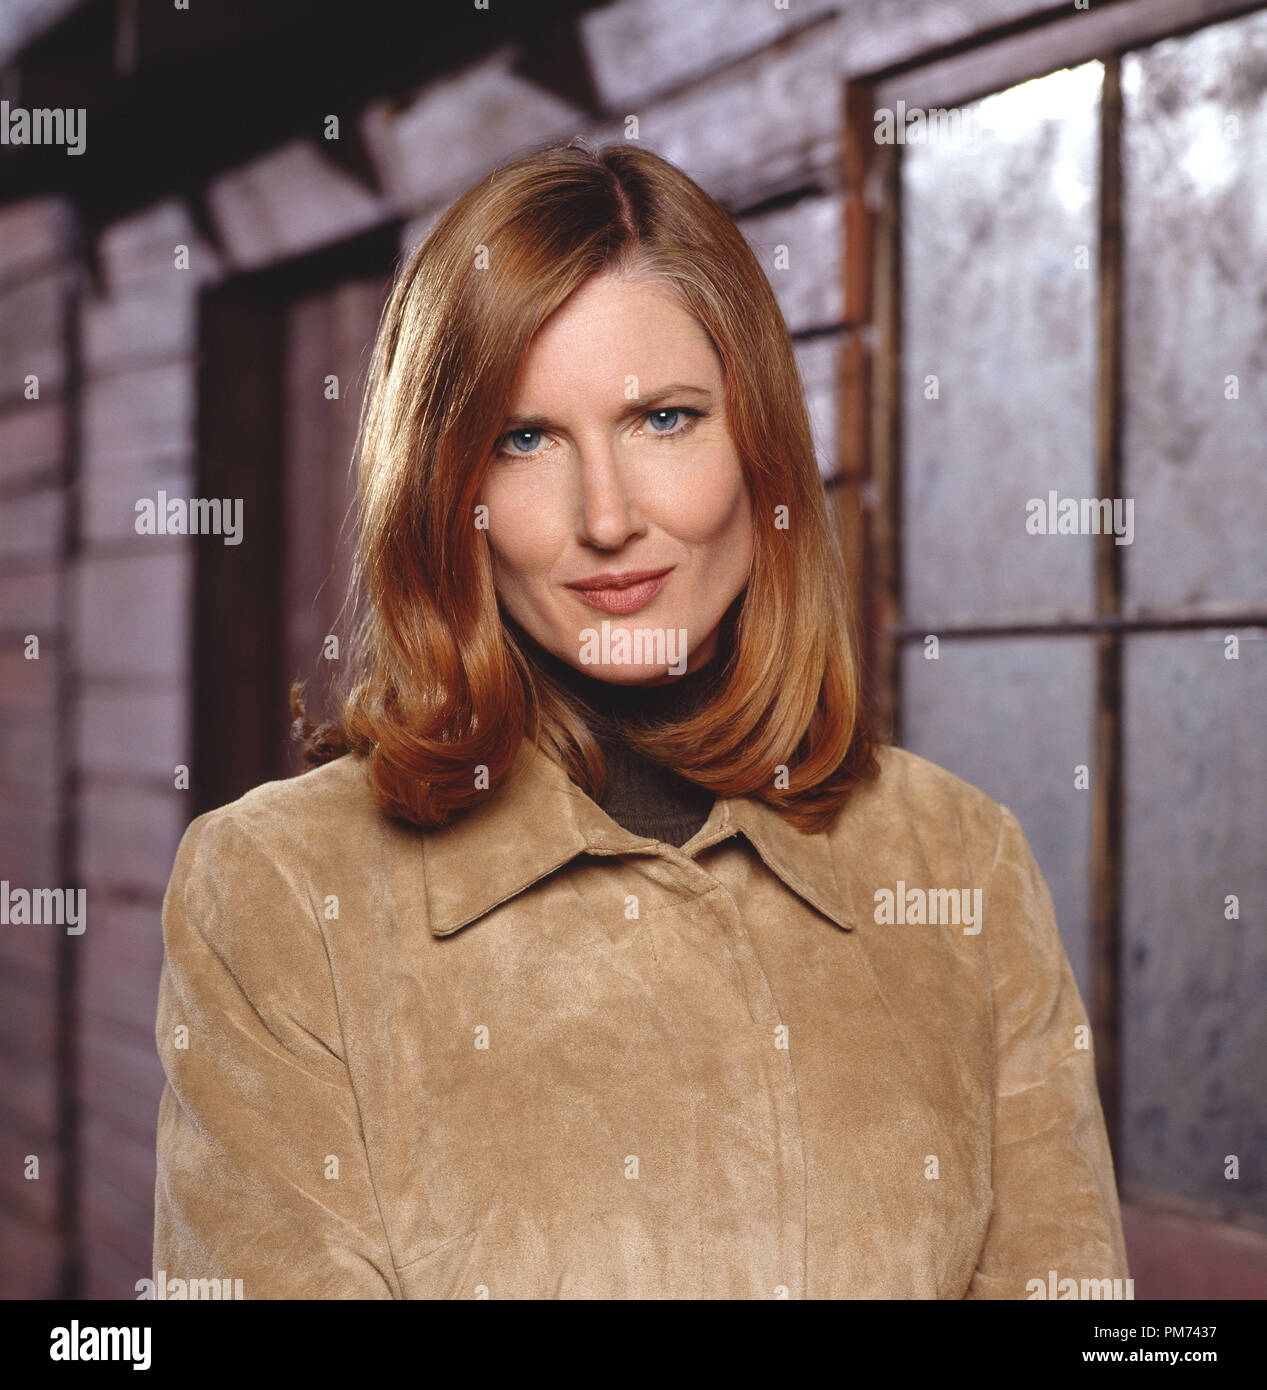 """Film Still / Publicity Still from """"Smallville""""  Annette O'Toole 2001 Photo credit: Kharen Hill File Reference # 30847363THA  For Editorial Use Only -  All Rights Reserved Stock Photo"""